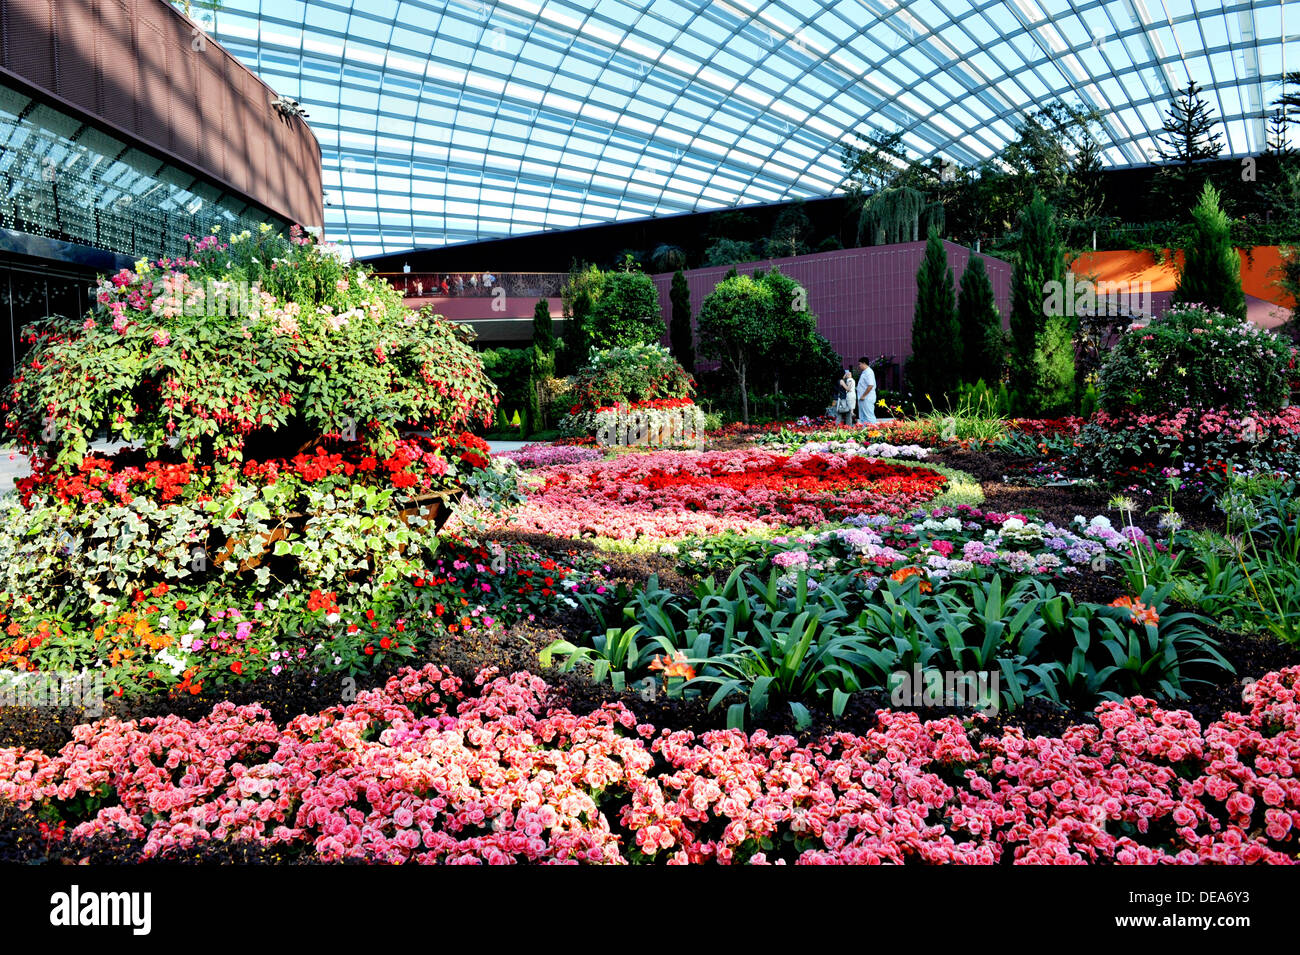 singapore tourist attractions flower dome at gardens by the bay - Garden By The Bay Flower